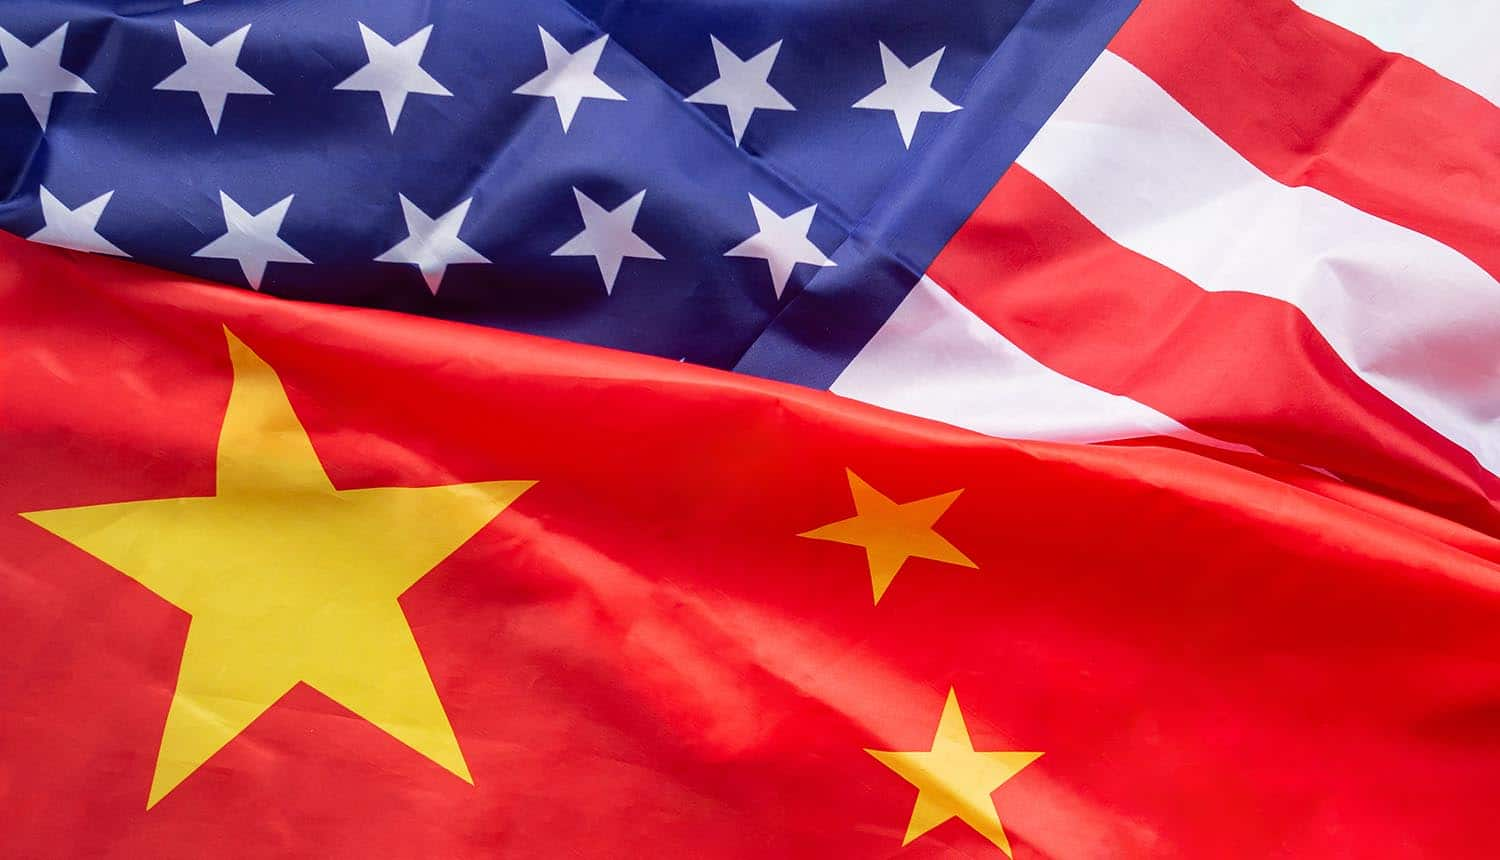 Top view of American flag and China flag together showing threat of data theft